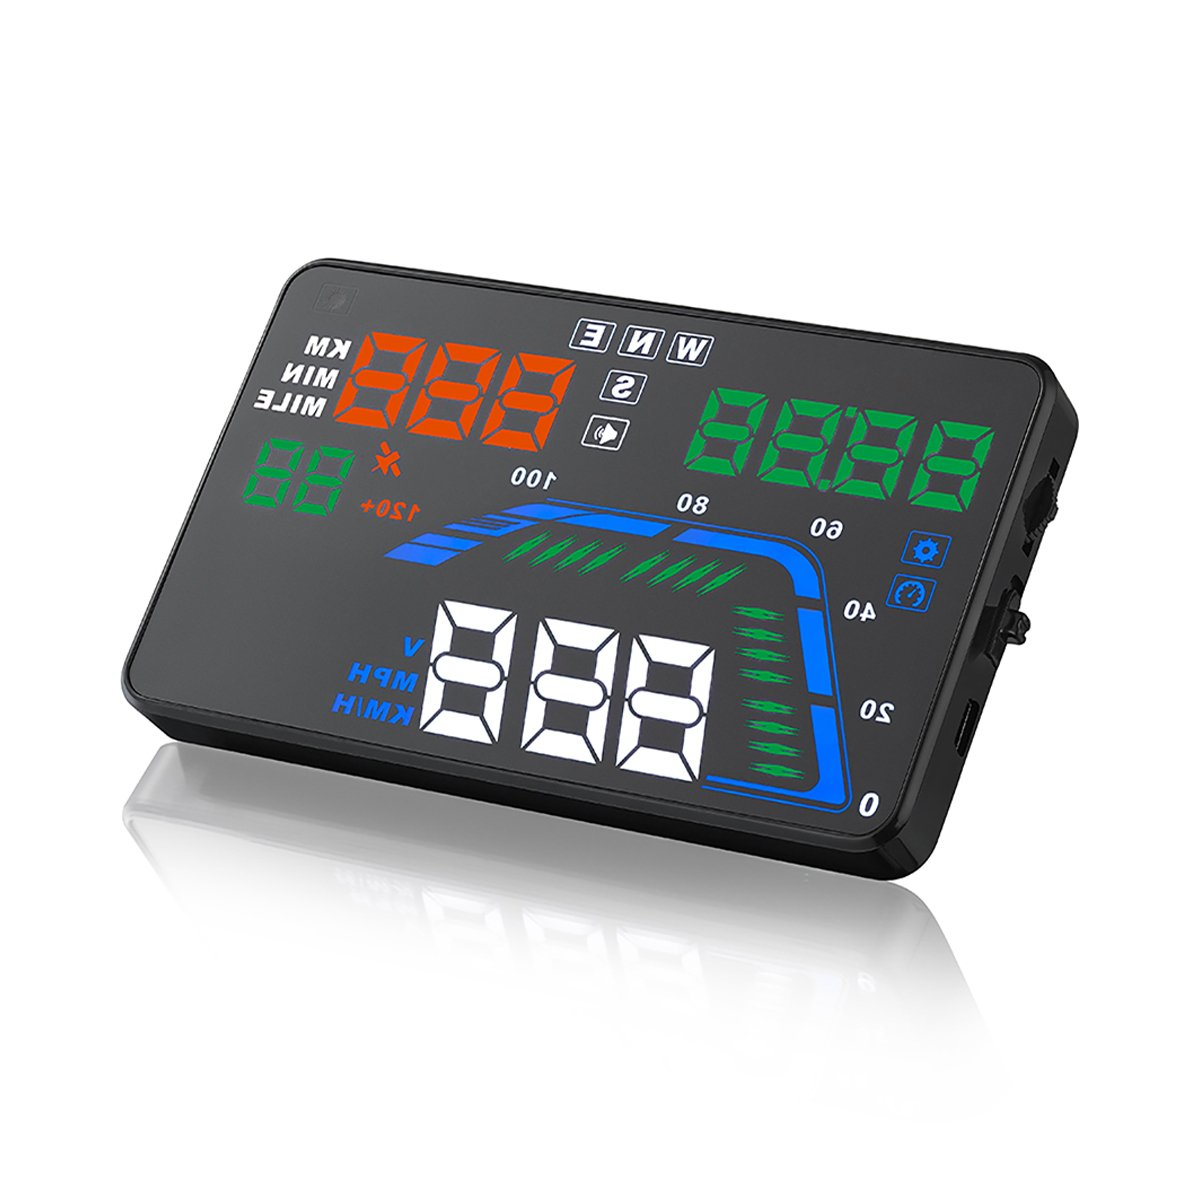 SEANFAR Q7 Head Up Display HUD OBD2 Windshield Universal Car GPS 5.5'' HUD Dashboard Vehicle-Mounted Projector with Over Speedometer Kmh/ MPH Speed Alarm Fuel Consumption Multicoloured Colorful